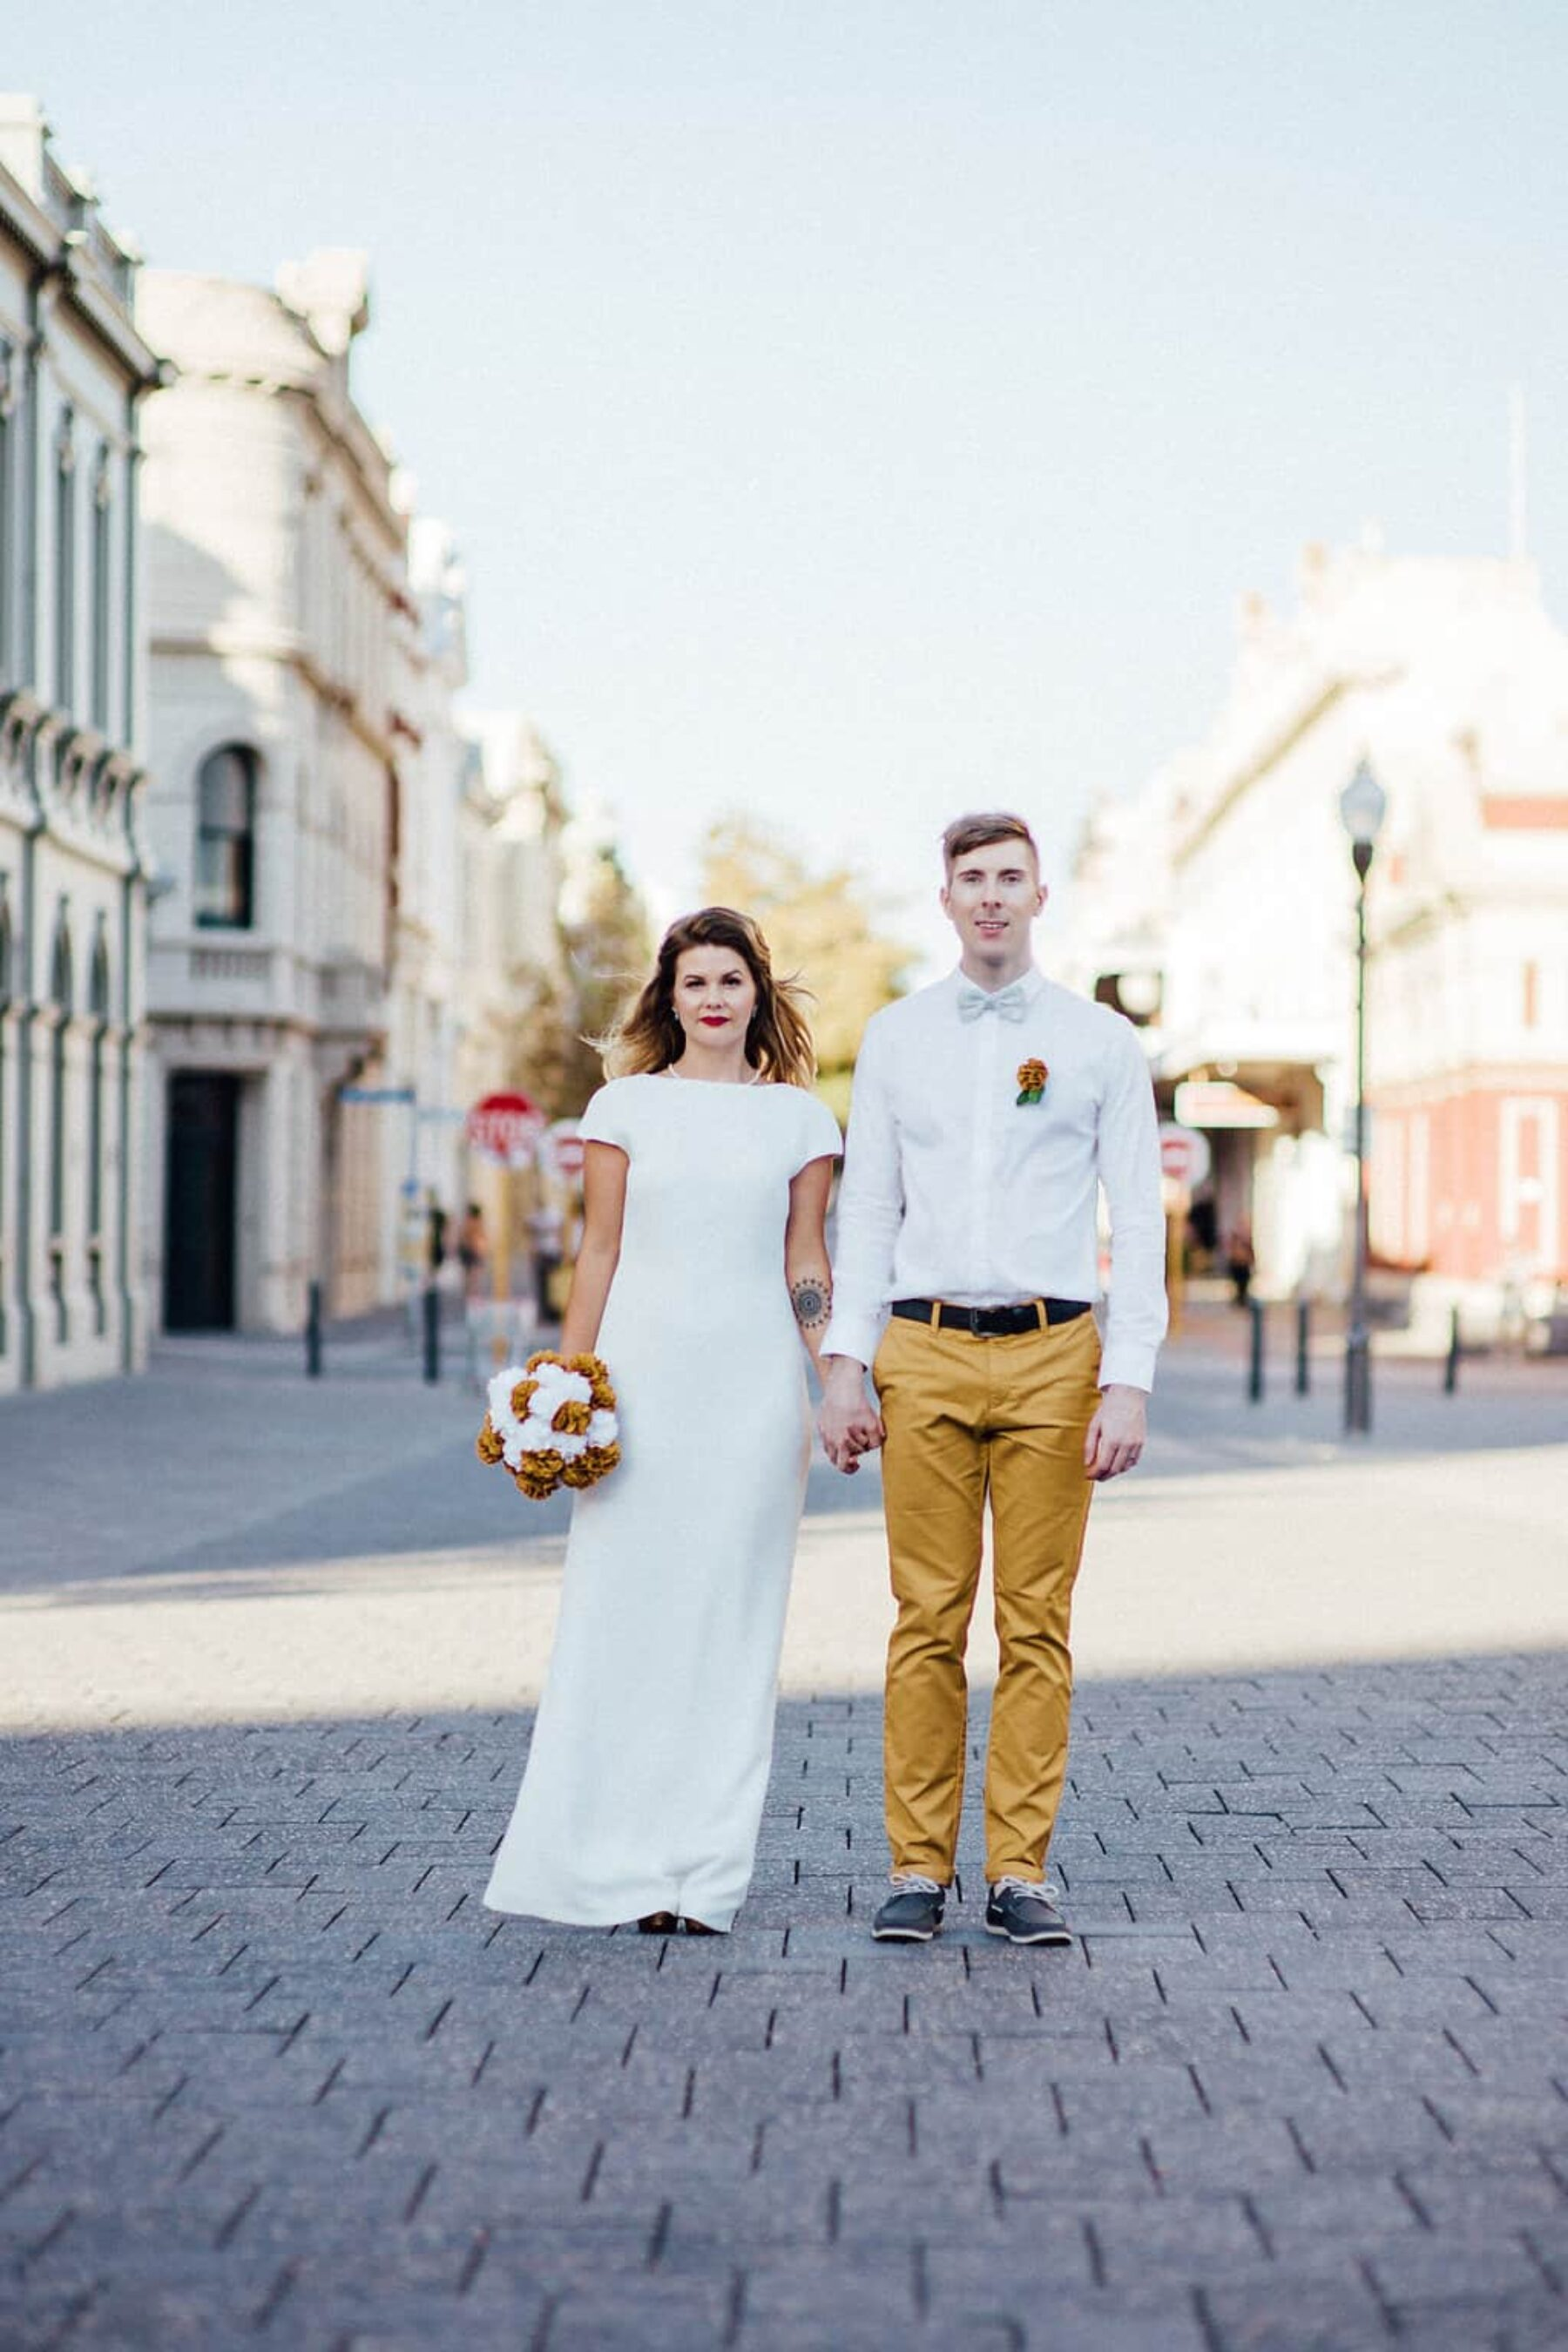 Little Creatures wedding | Photography by Fiona Vail